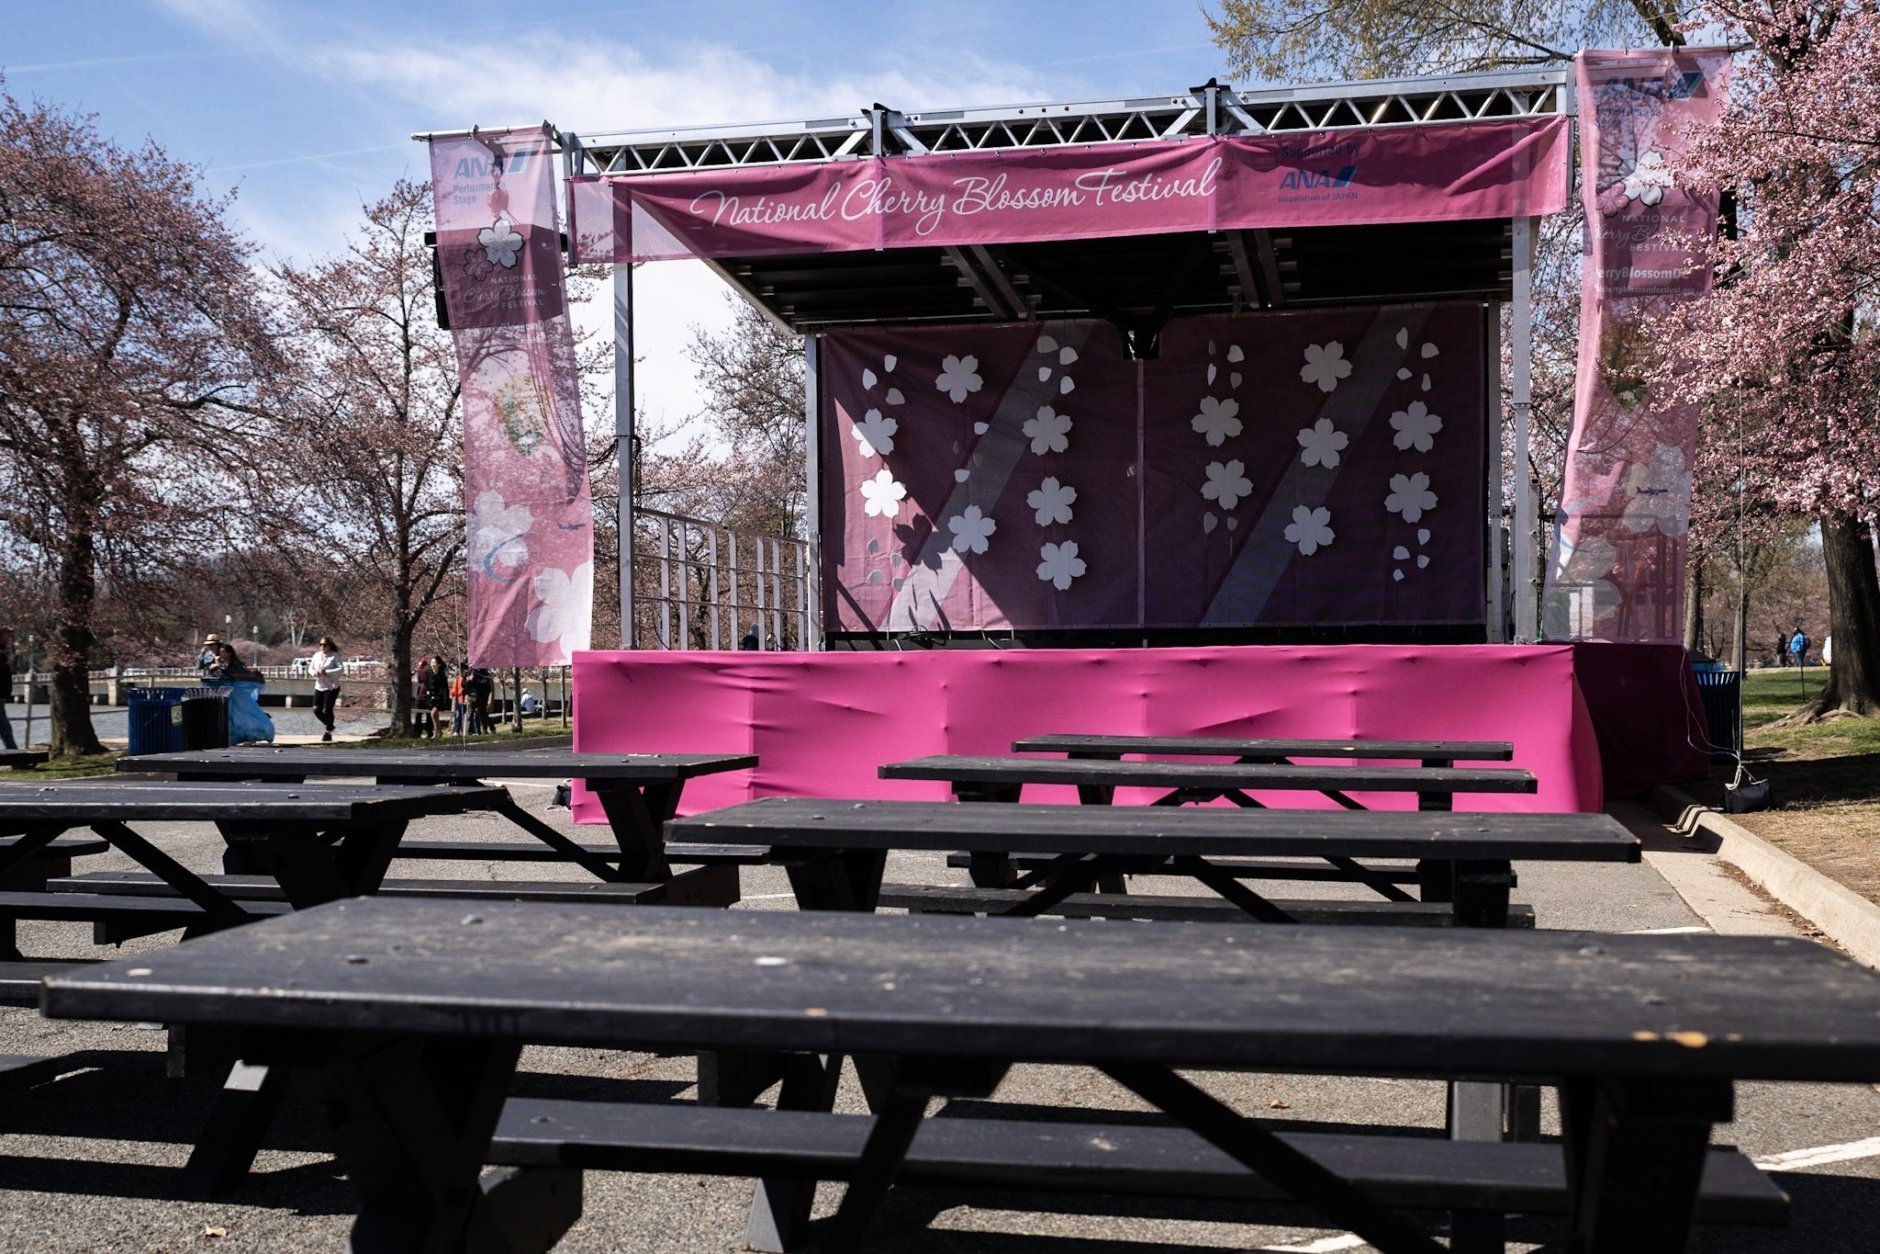 The Cherry Blossom Festival's main stage,. The annual festival features musicians, art exhibitions and parades for weeks in late March through early April. (WTOP/Alejandro Alvarez)